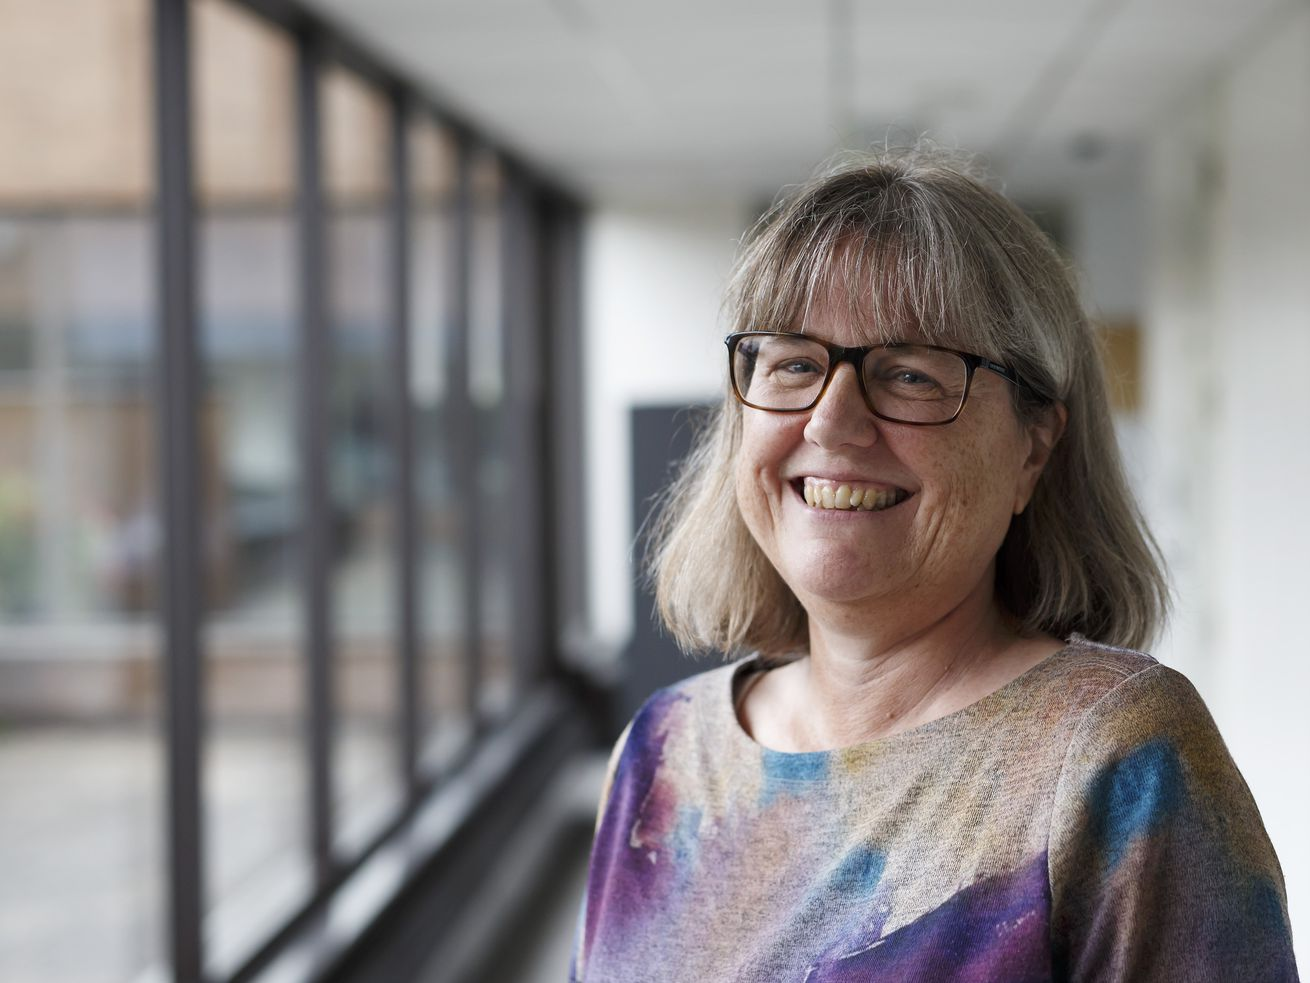 Amber Clayton Wikipedia donna strickland had no wikipedia page before her nobel. her